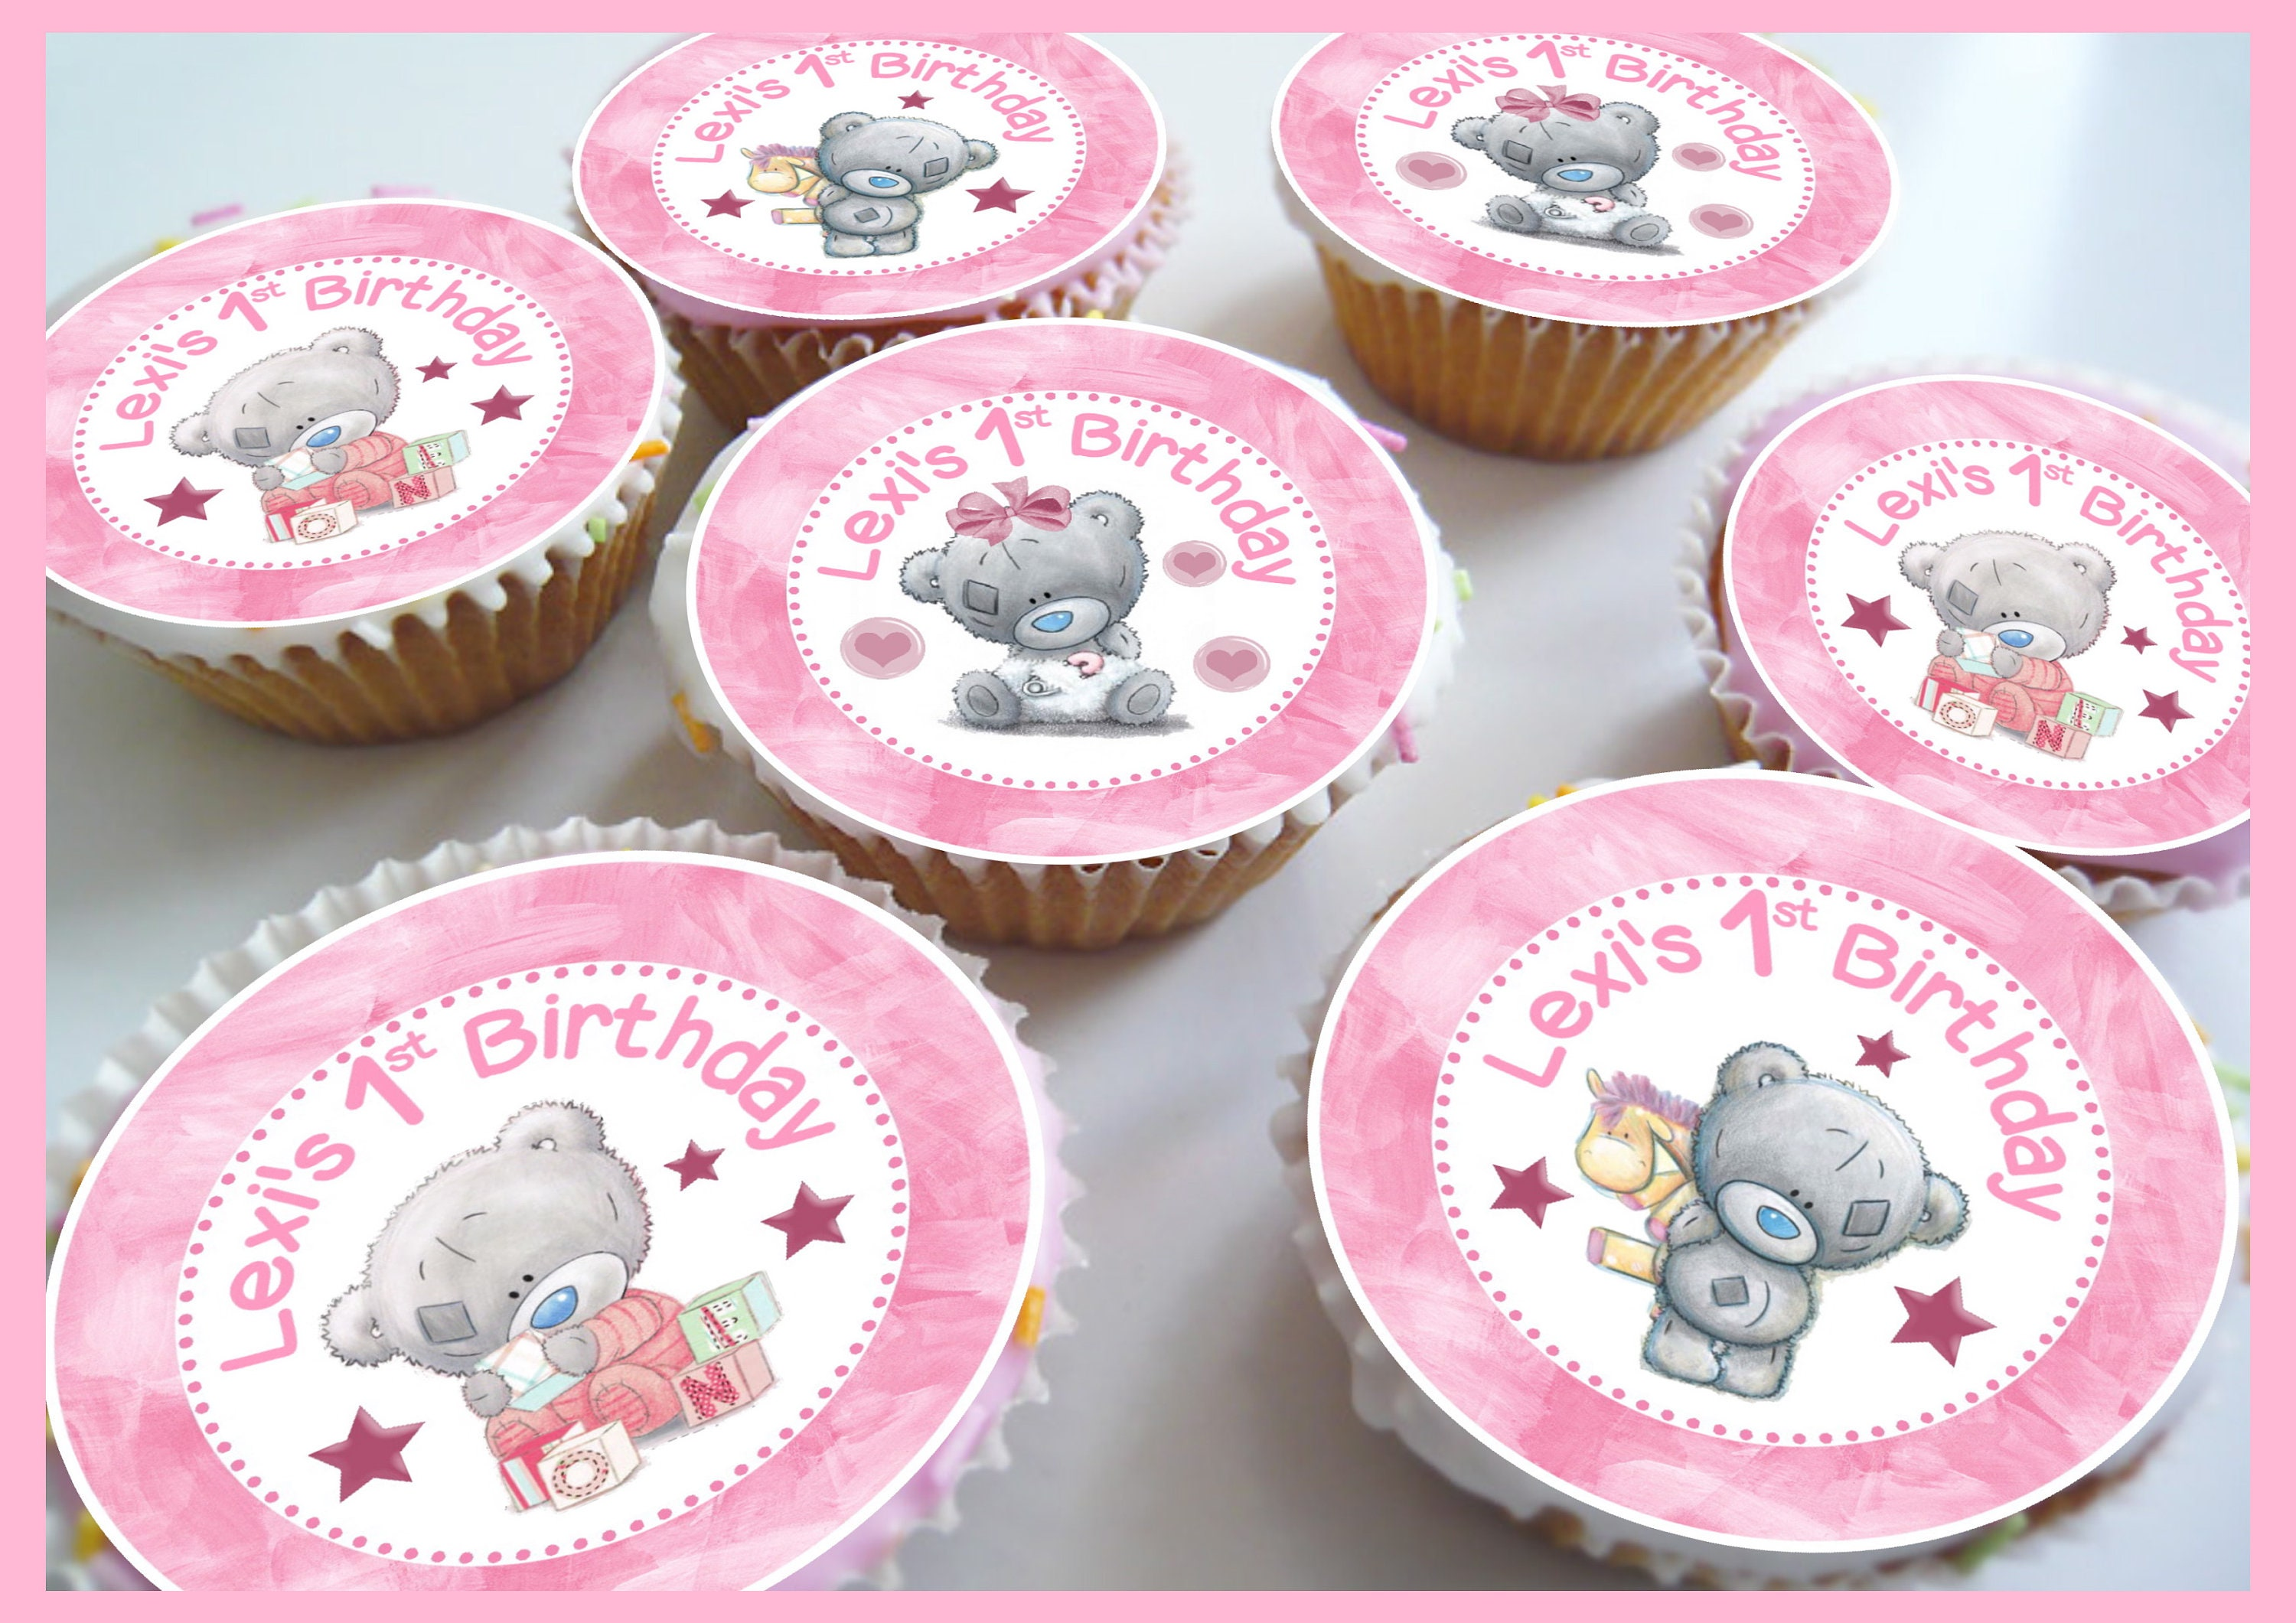 CUTE PINK PIG PERSONALISED EDIBLE ICING BIRTHDAY CAKE TOPPER /& 8 CUPCAKES